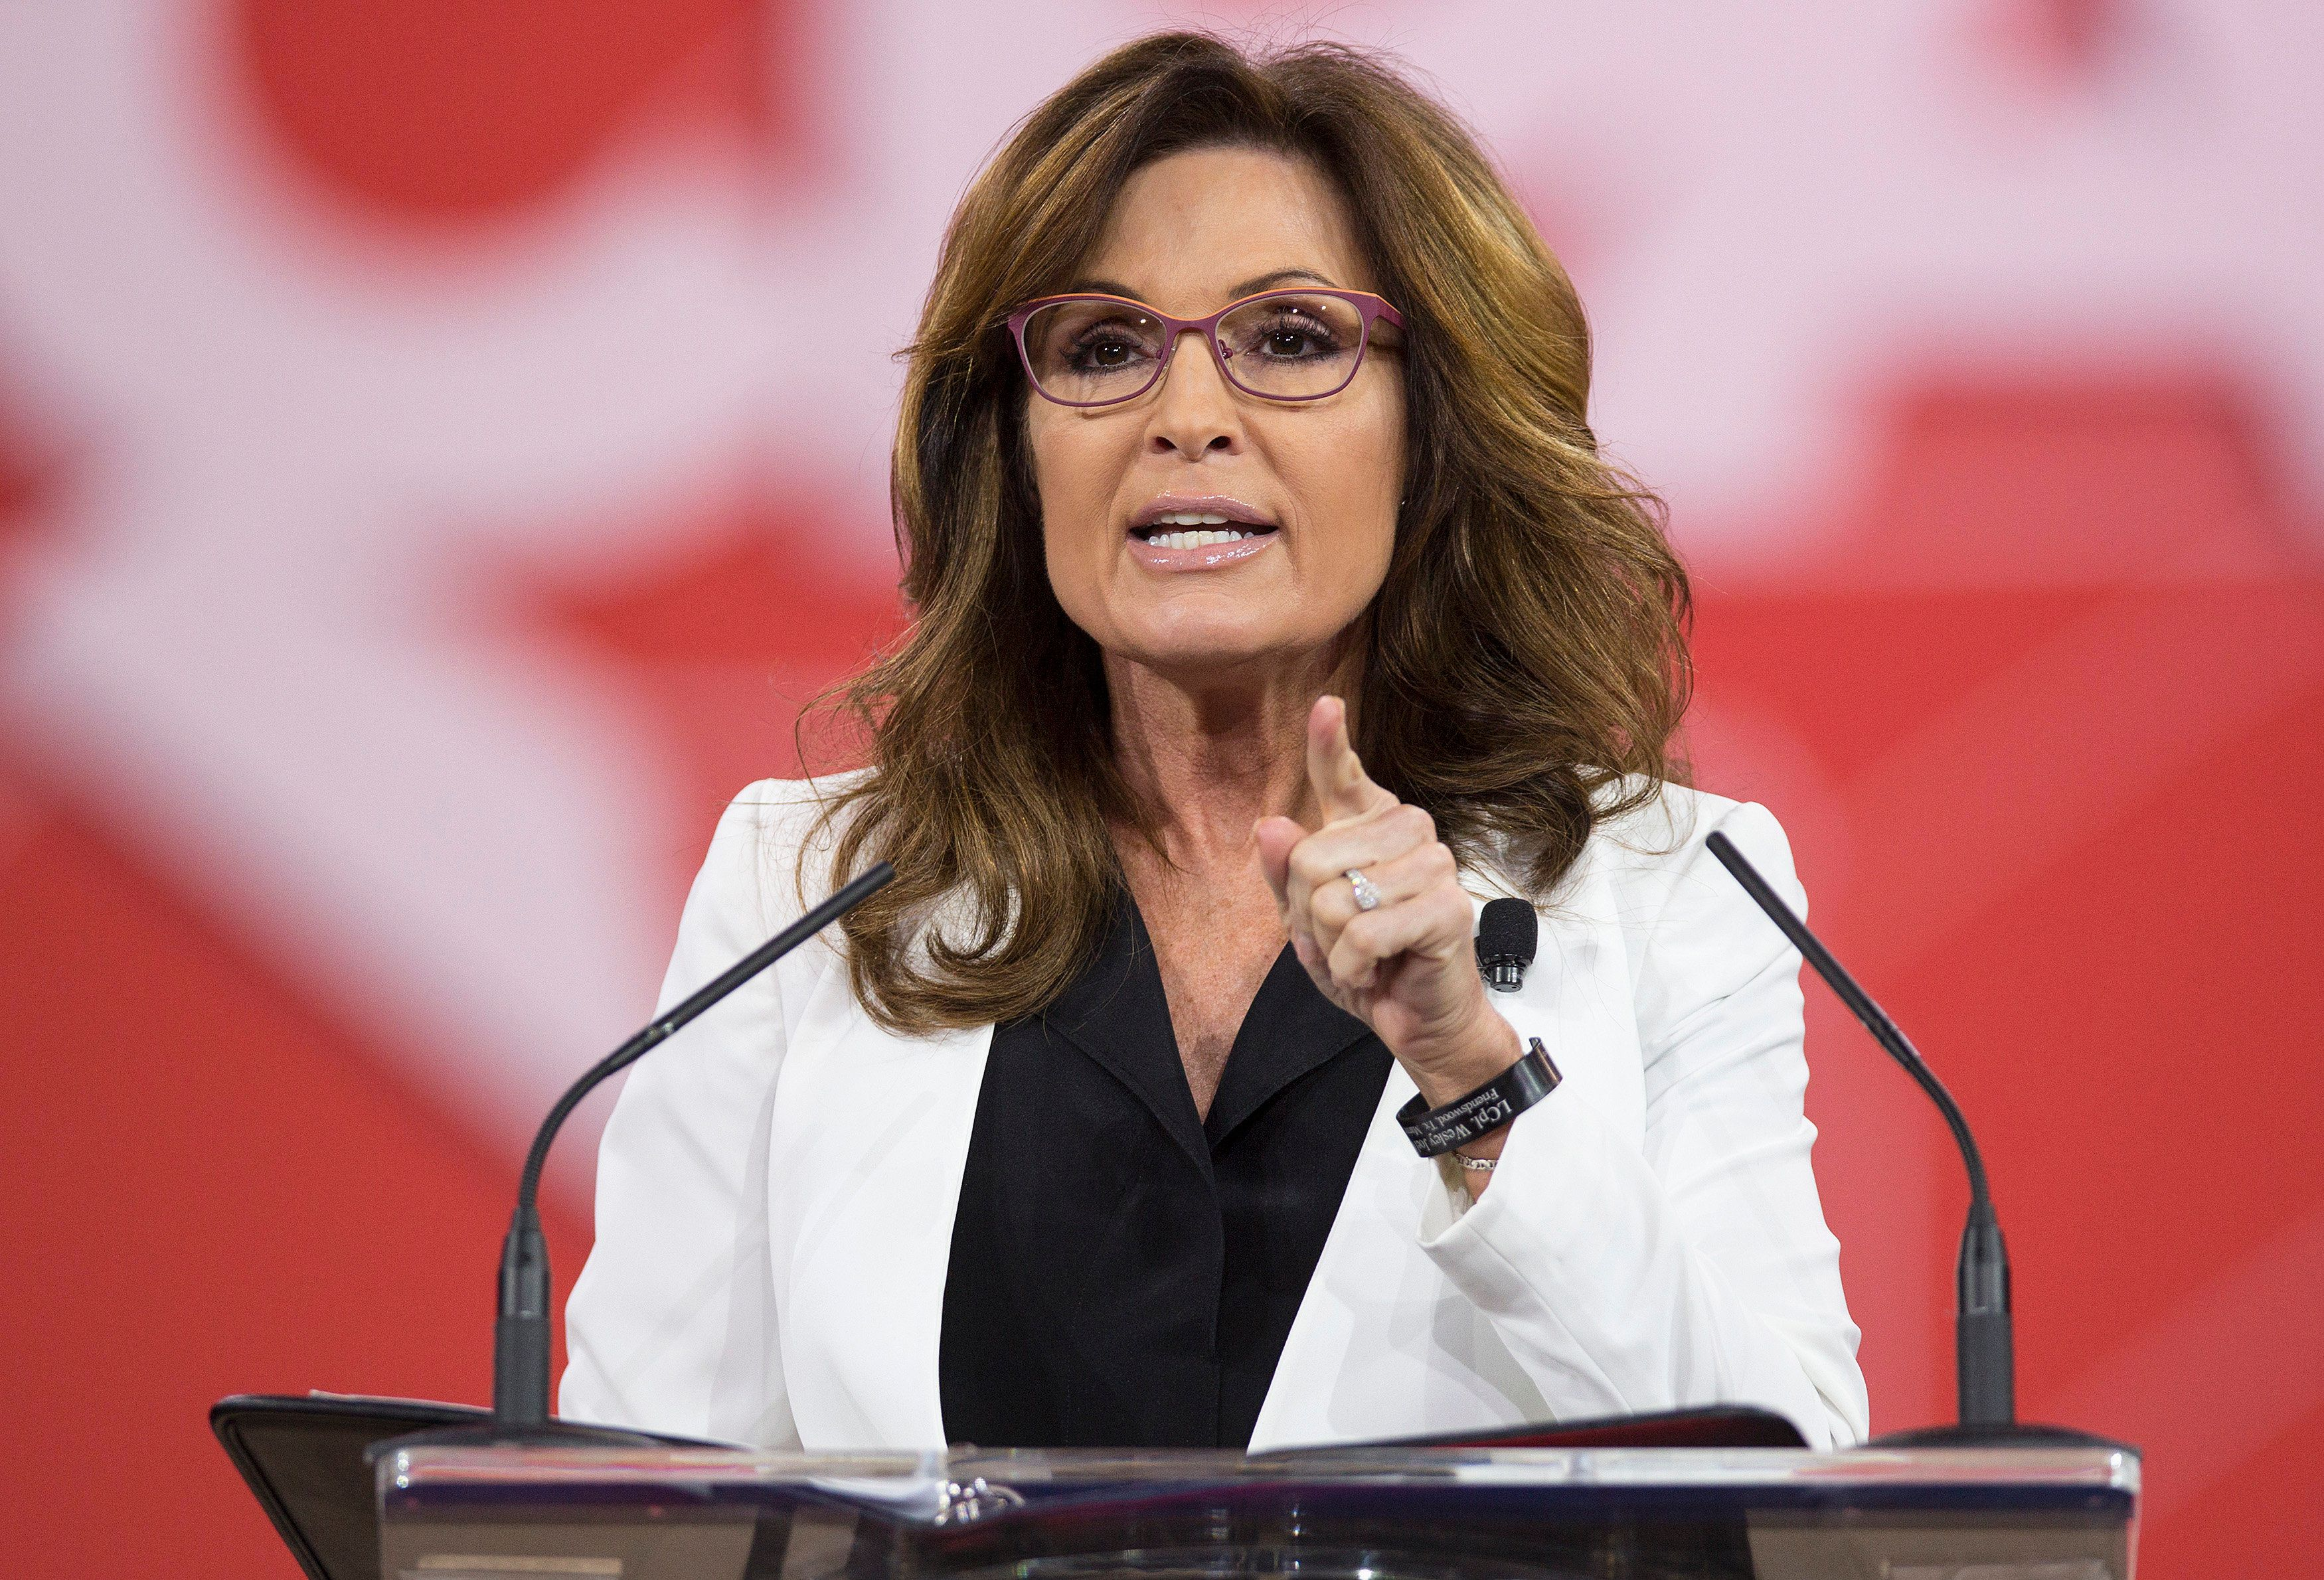 Former Republican Governor of Alaska Sarah Palin speaks at the 42nd annual Conservative Political Action Conference (CPAC) at National Harbor, Maryland February 26, 2015.      REUTERS/Joshua Roberts    (UNITED STATES - Tags: POLITICS)